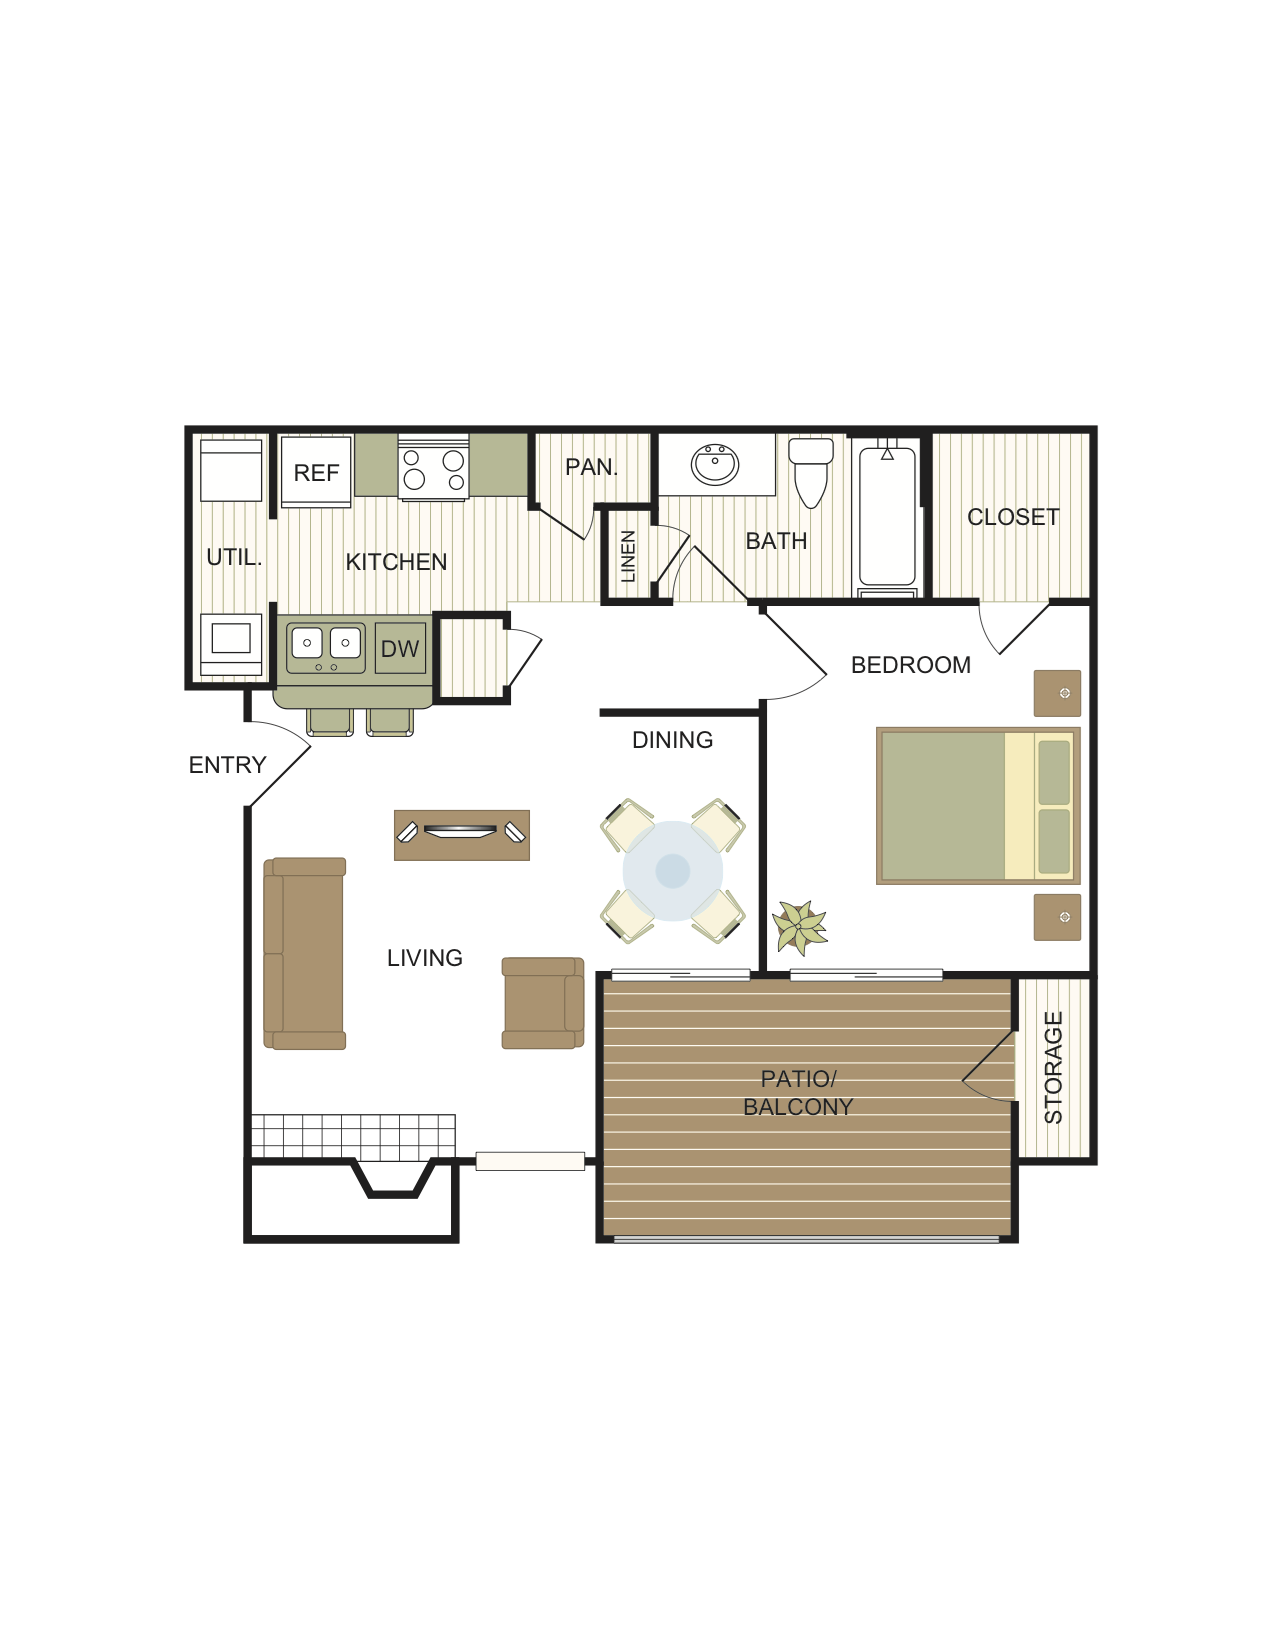 1 Bedroom | 1 Bath Floor Plan 2